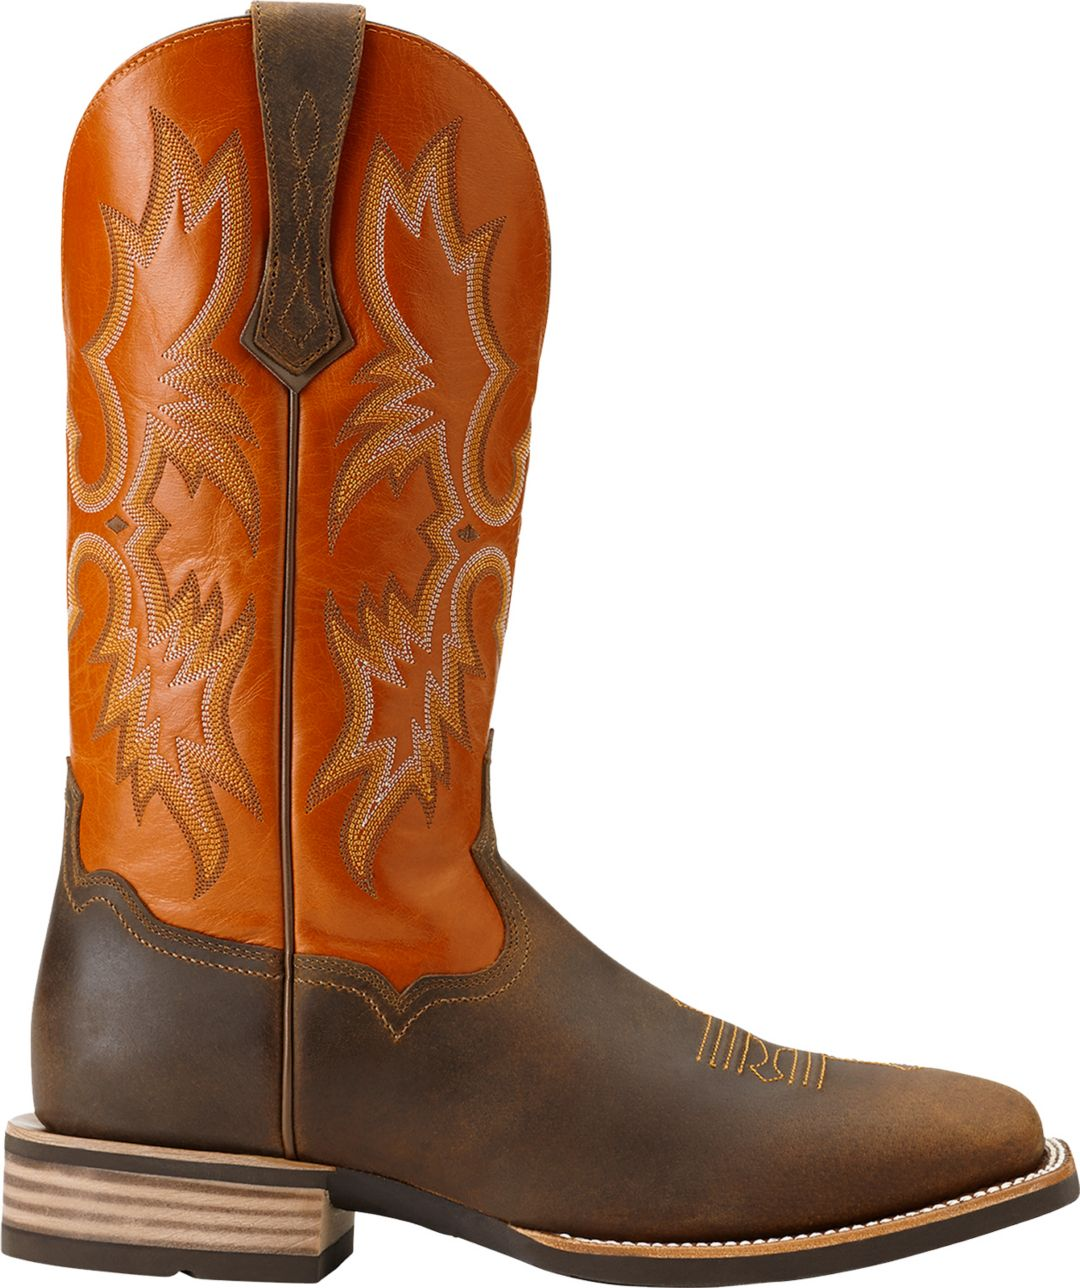 b354555c8cb Ariat Men's Tombstone Western Boots